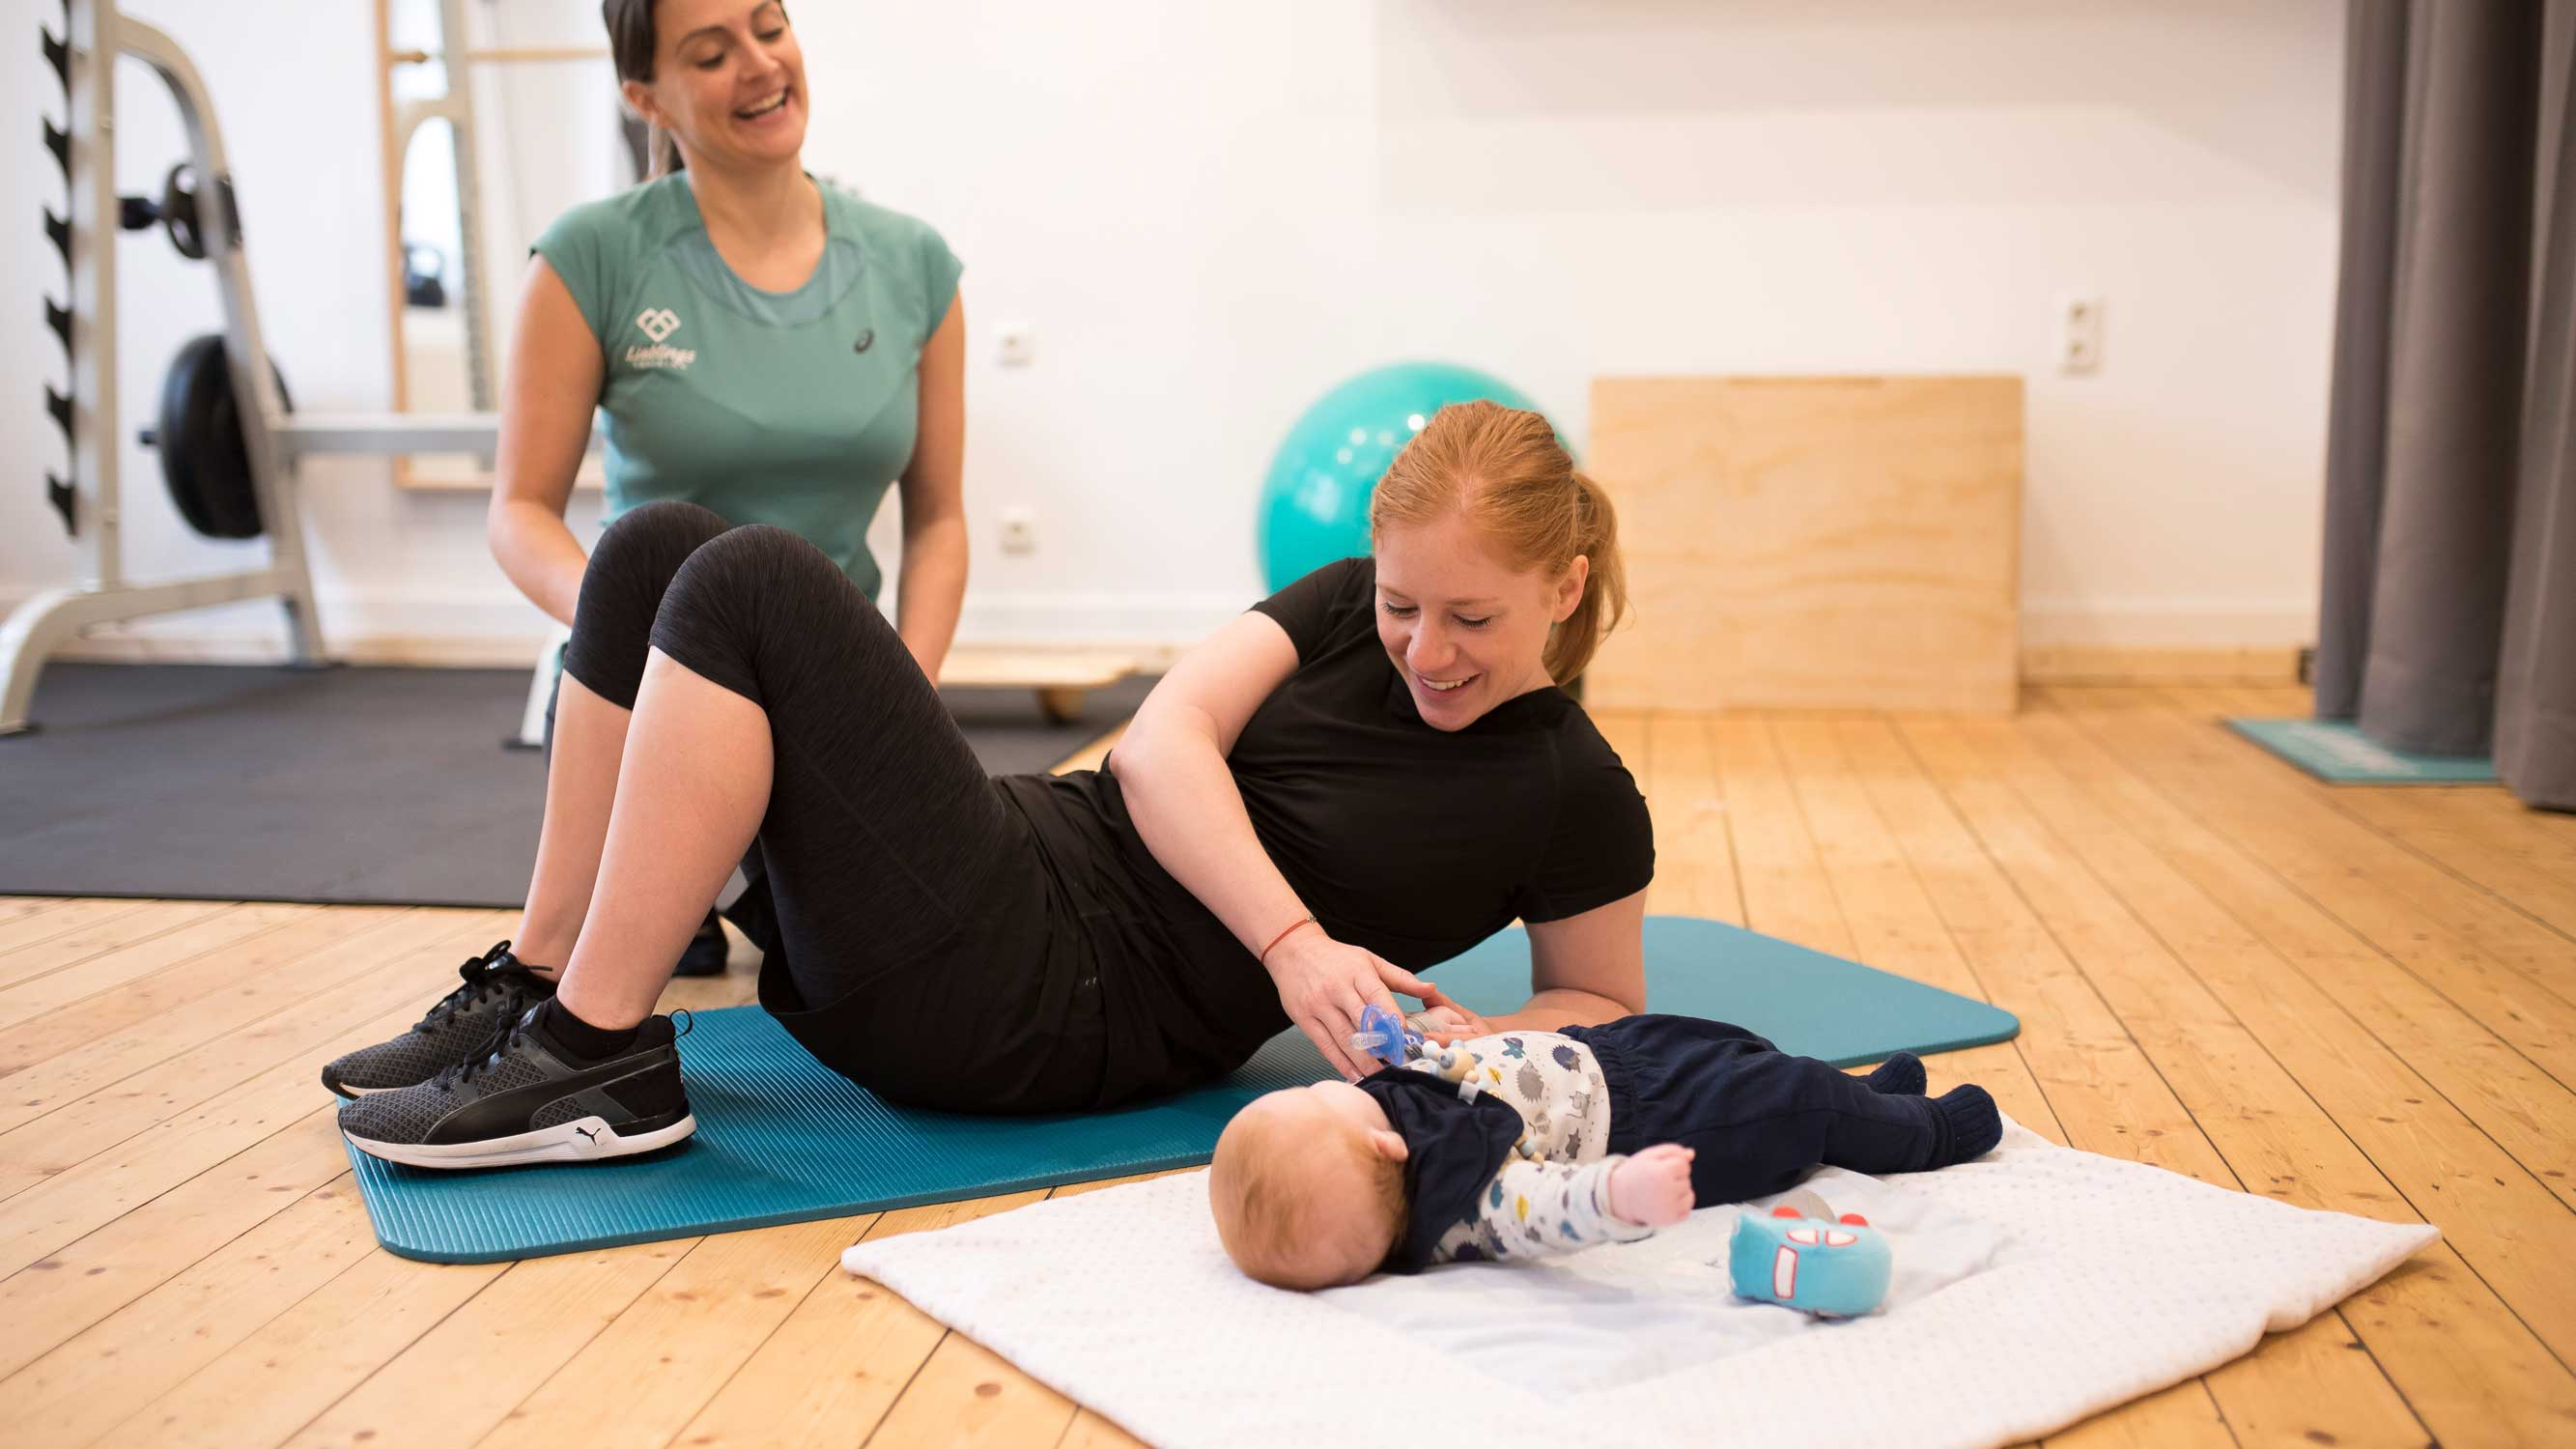 Mama Training Mit Baby